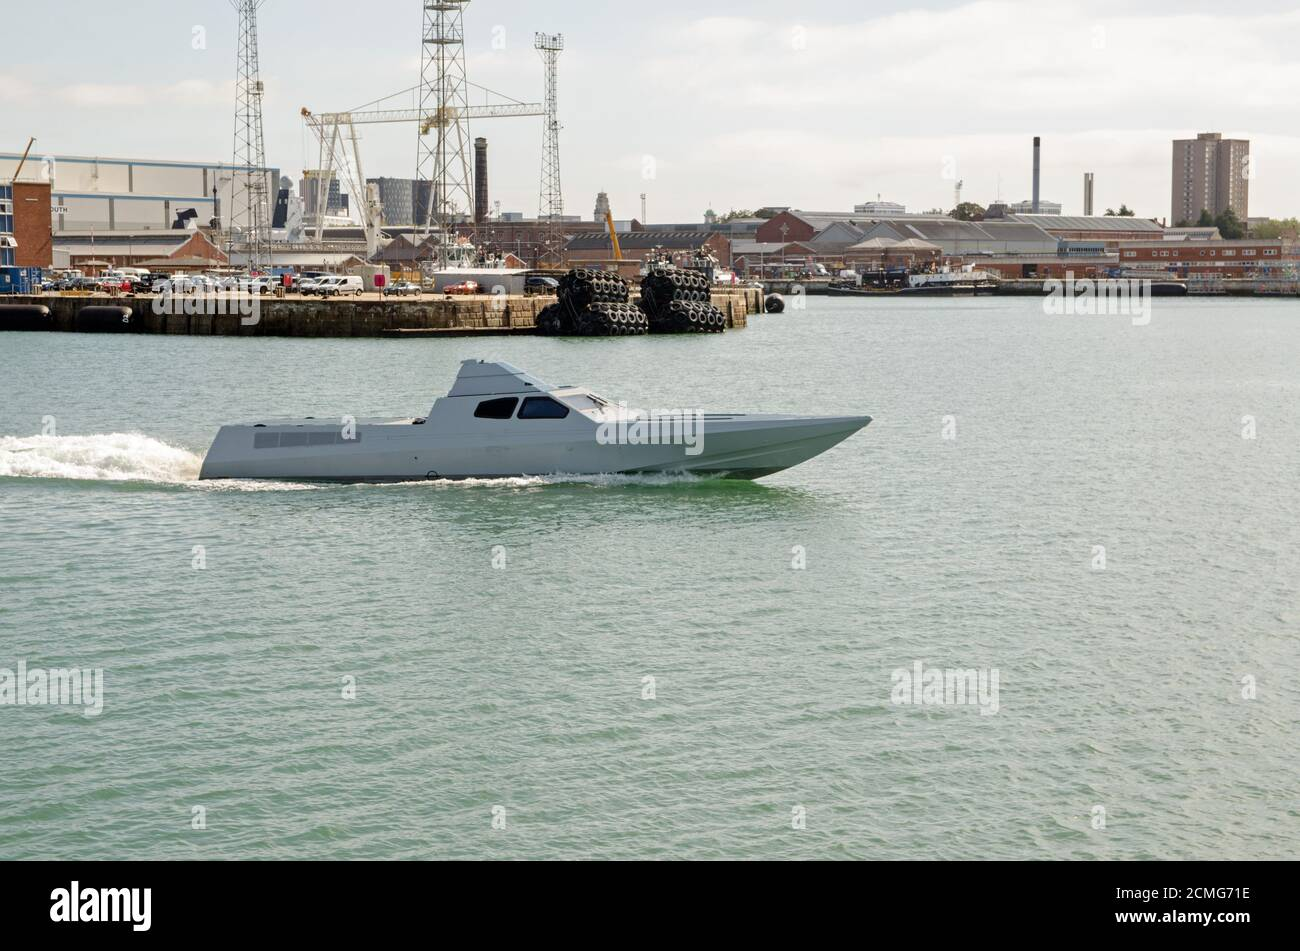 Portsmouth, UK - September 8, 2020: The prototype stealth boat being developed for the Special Boat Squadron as a fast interceptor craft by BAE System Stock Photo